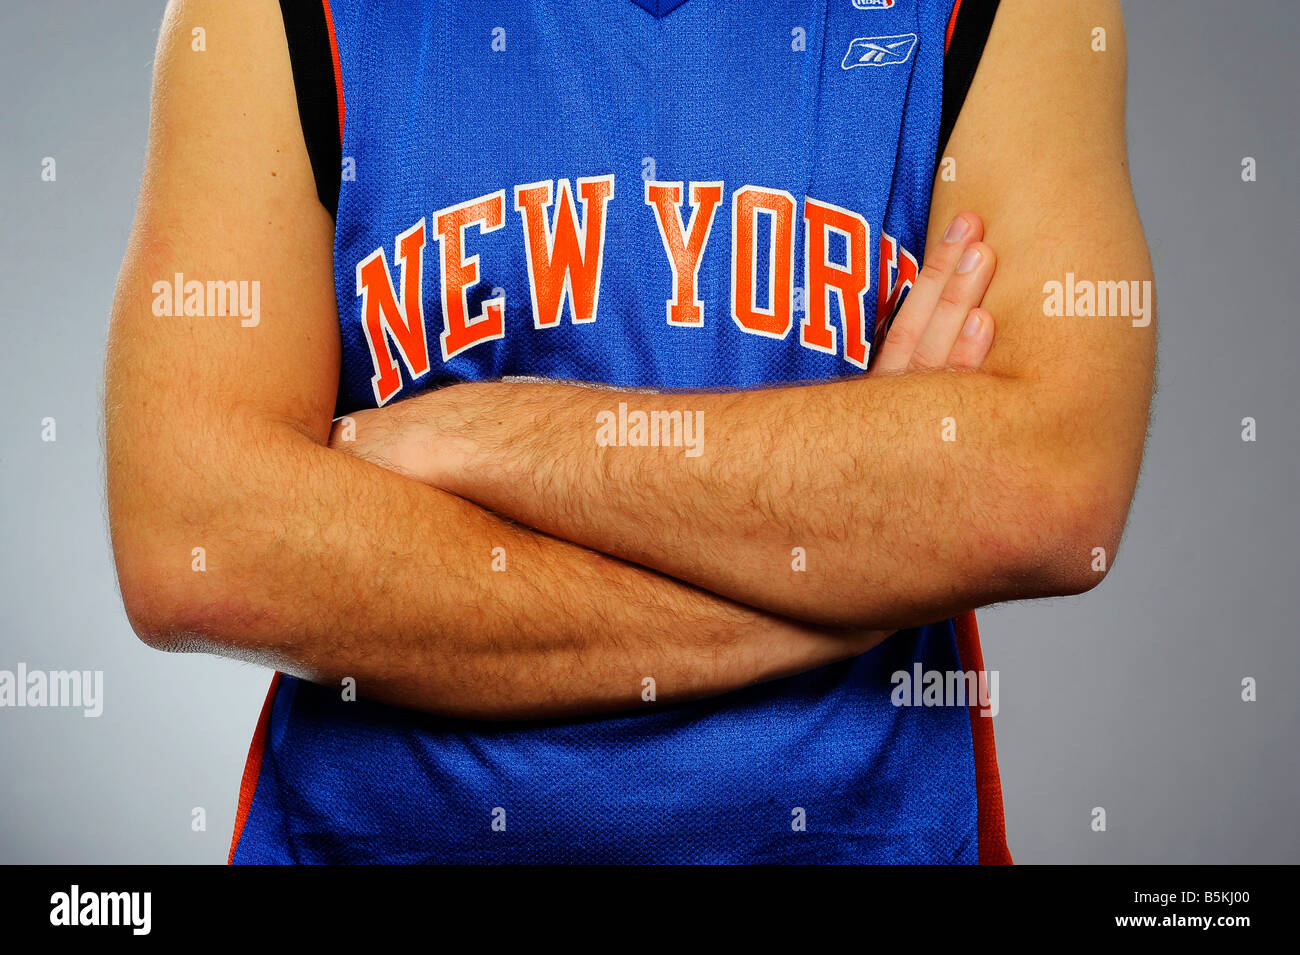 New York Arms Muscles Man Young Youth Tanned Caucasian America Stock